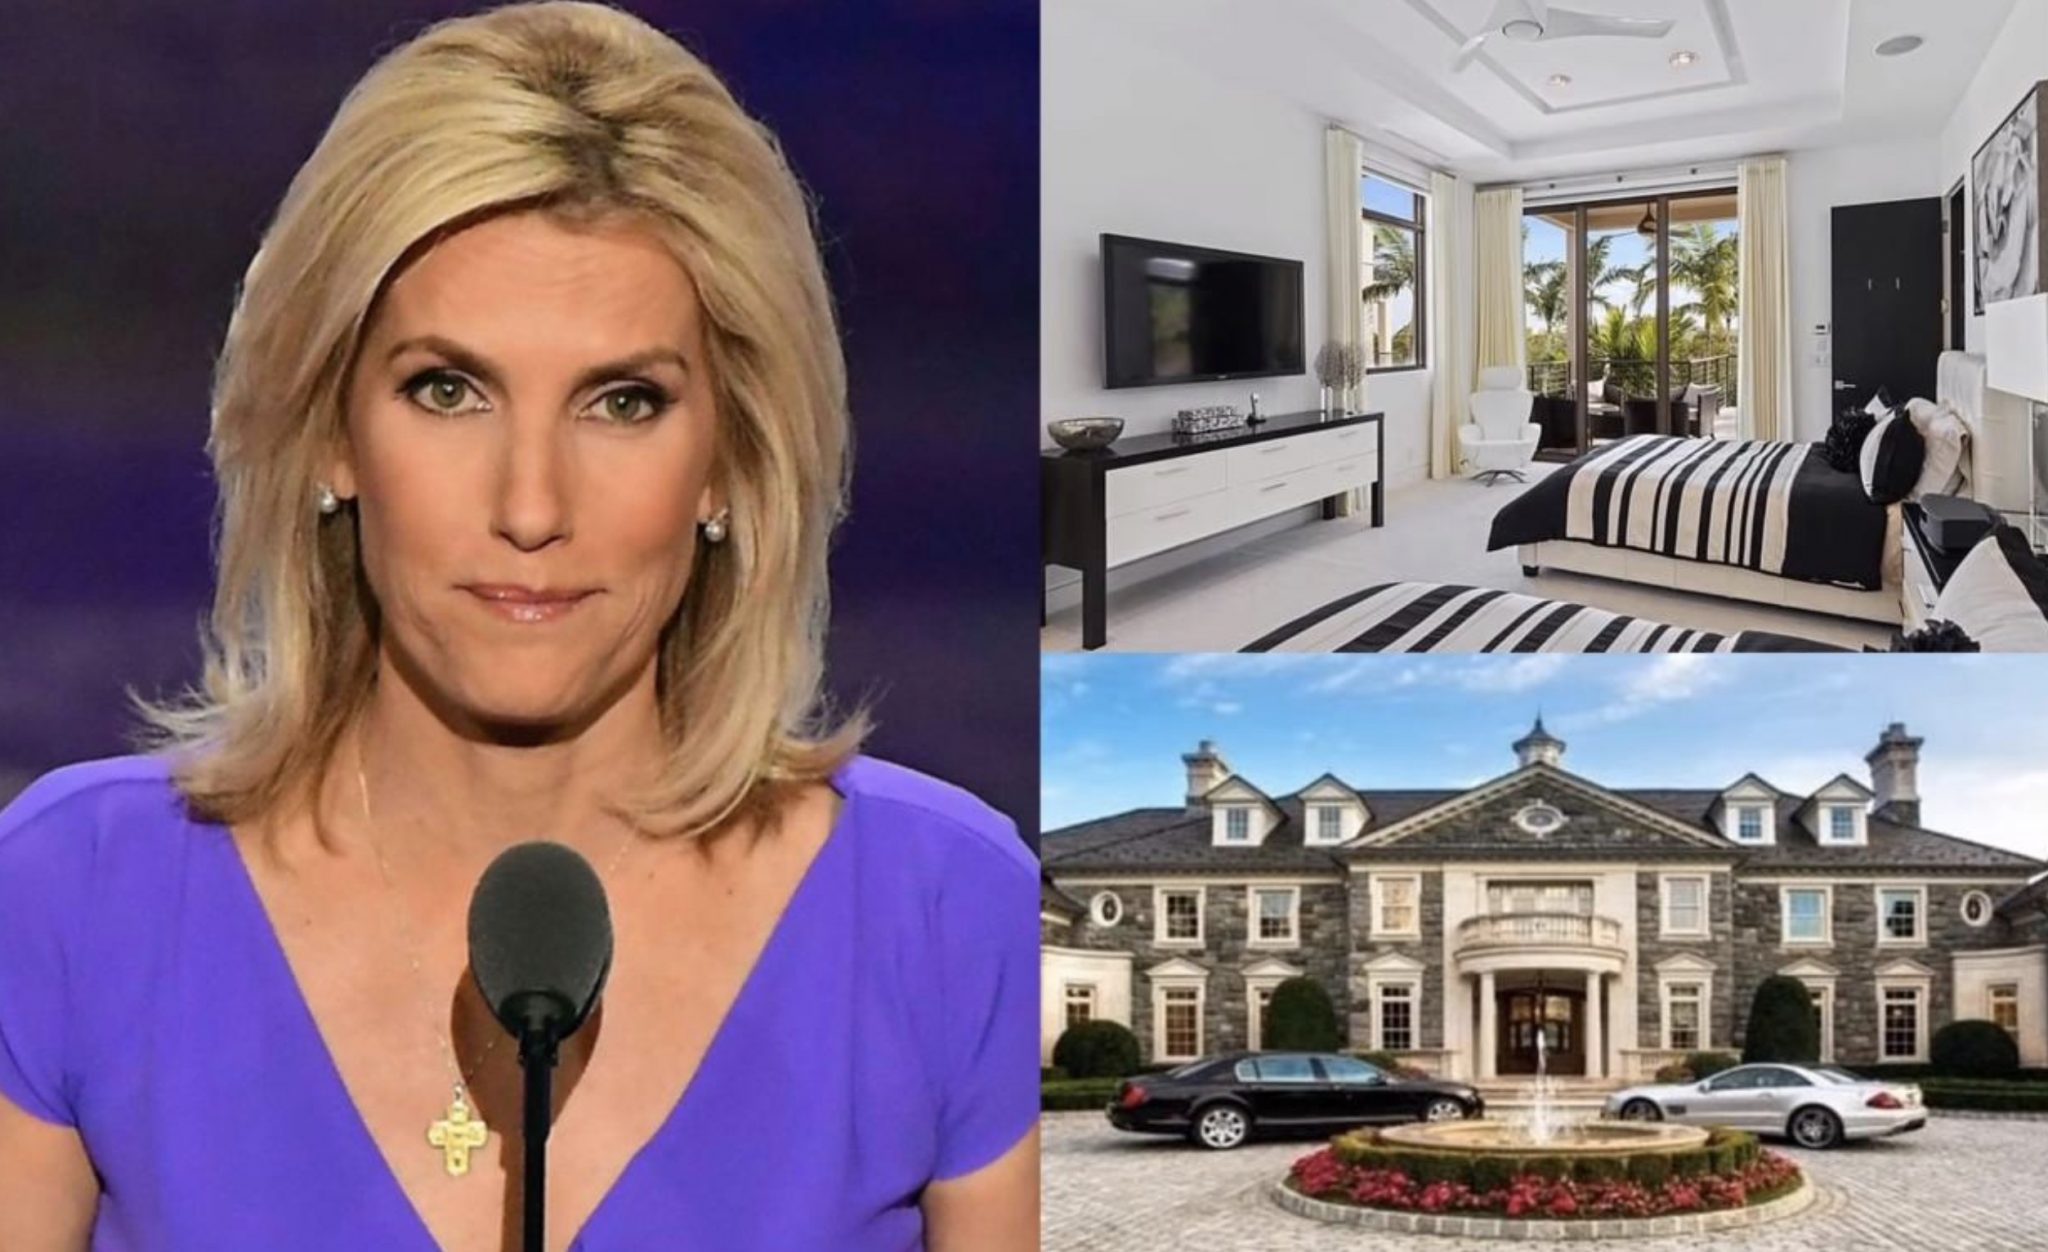 Laura Ingraham's 1 Million Home In Connecticut